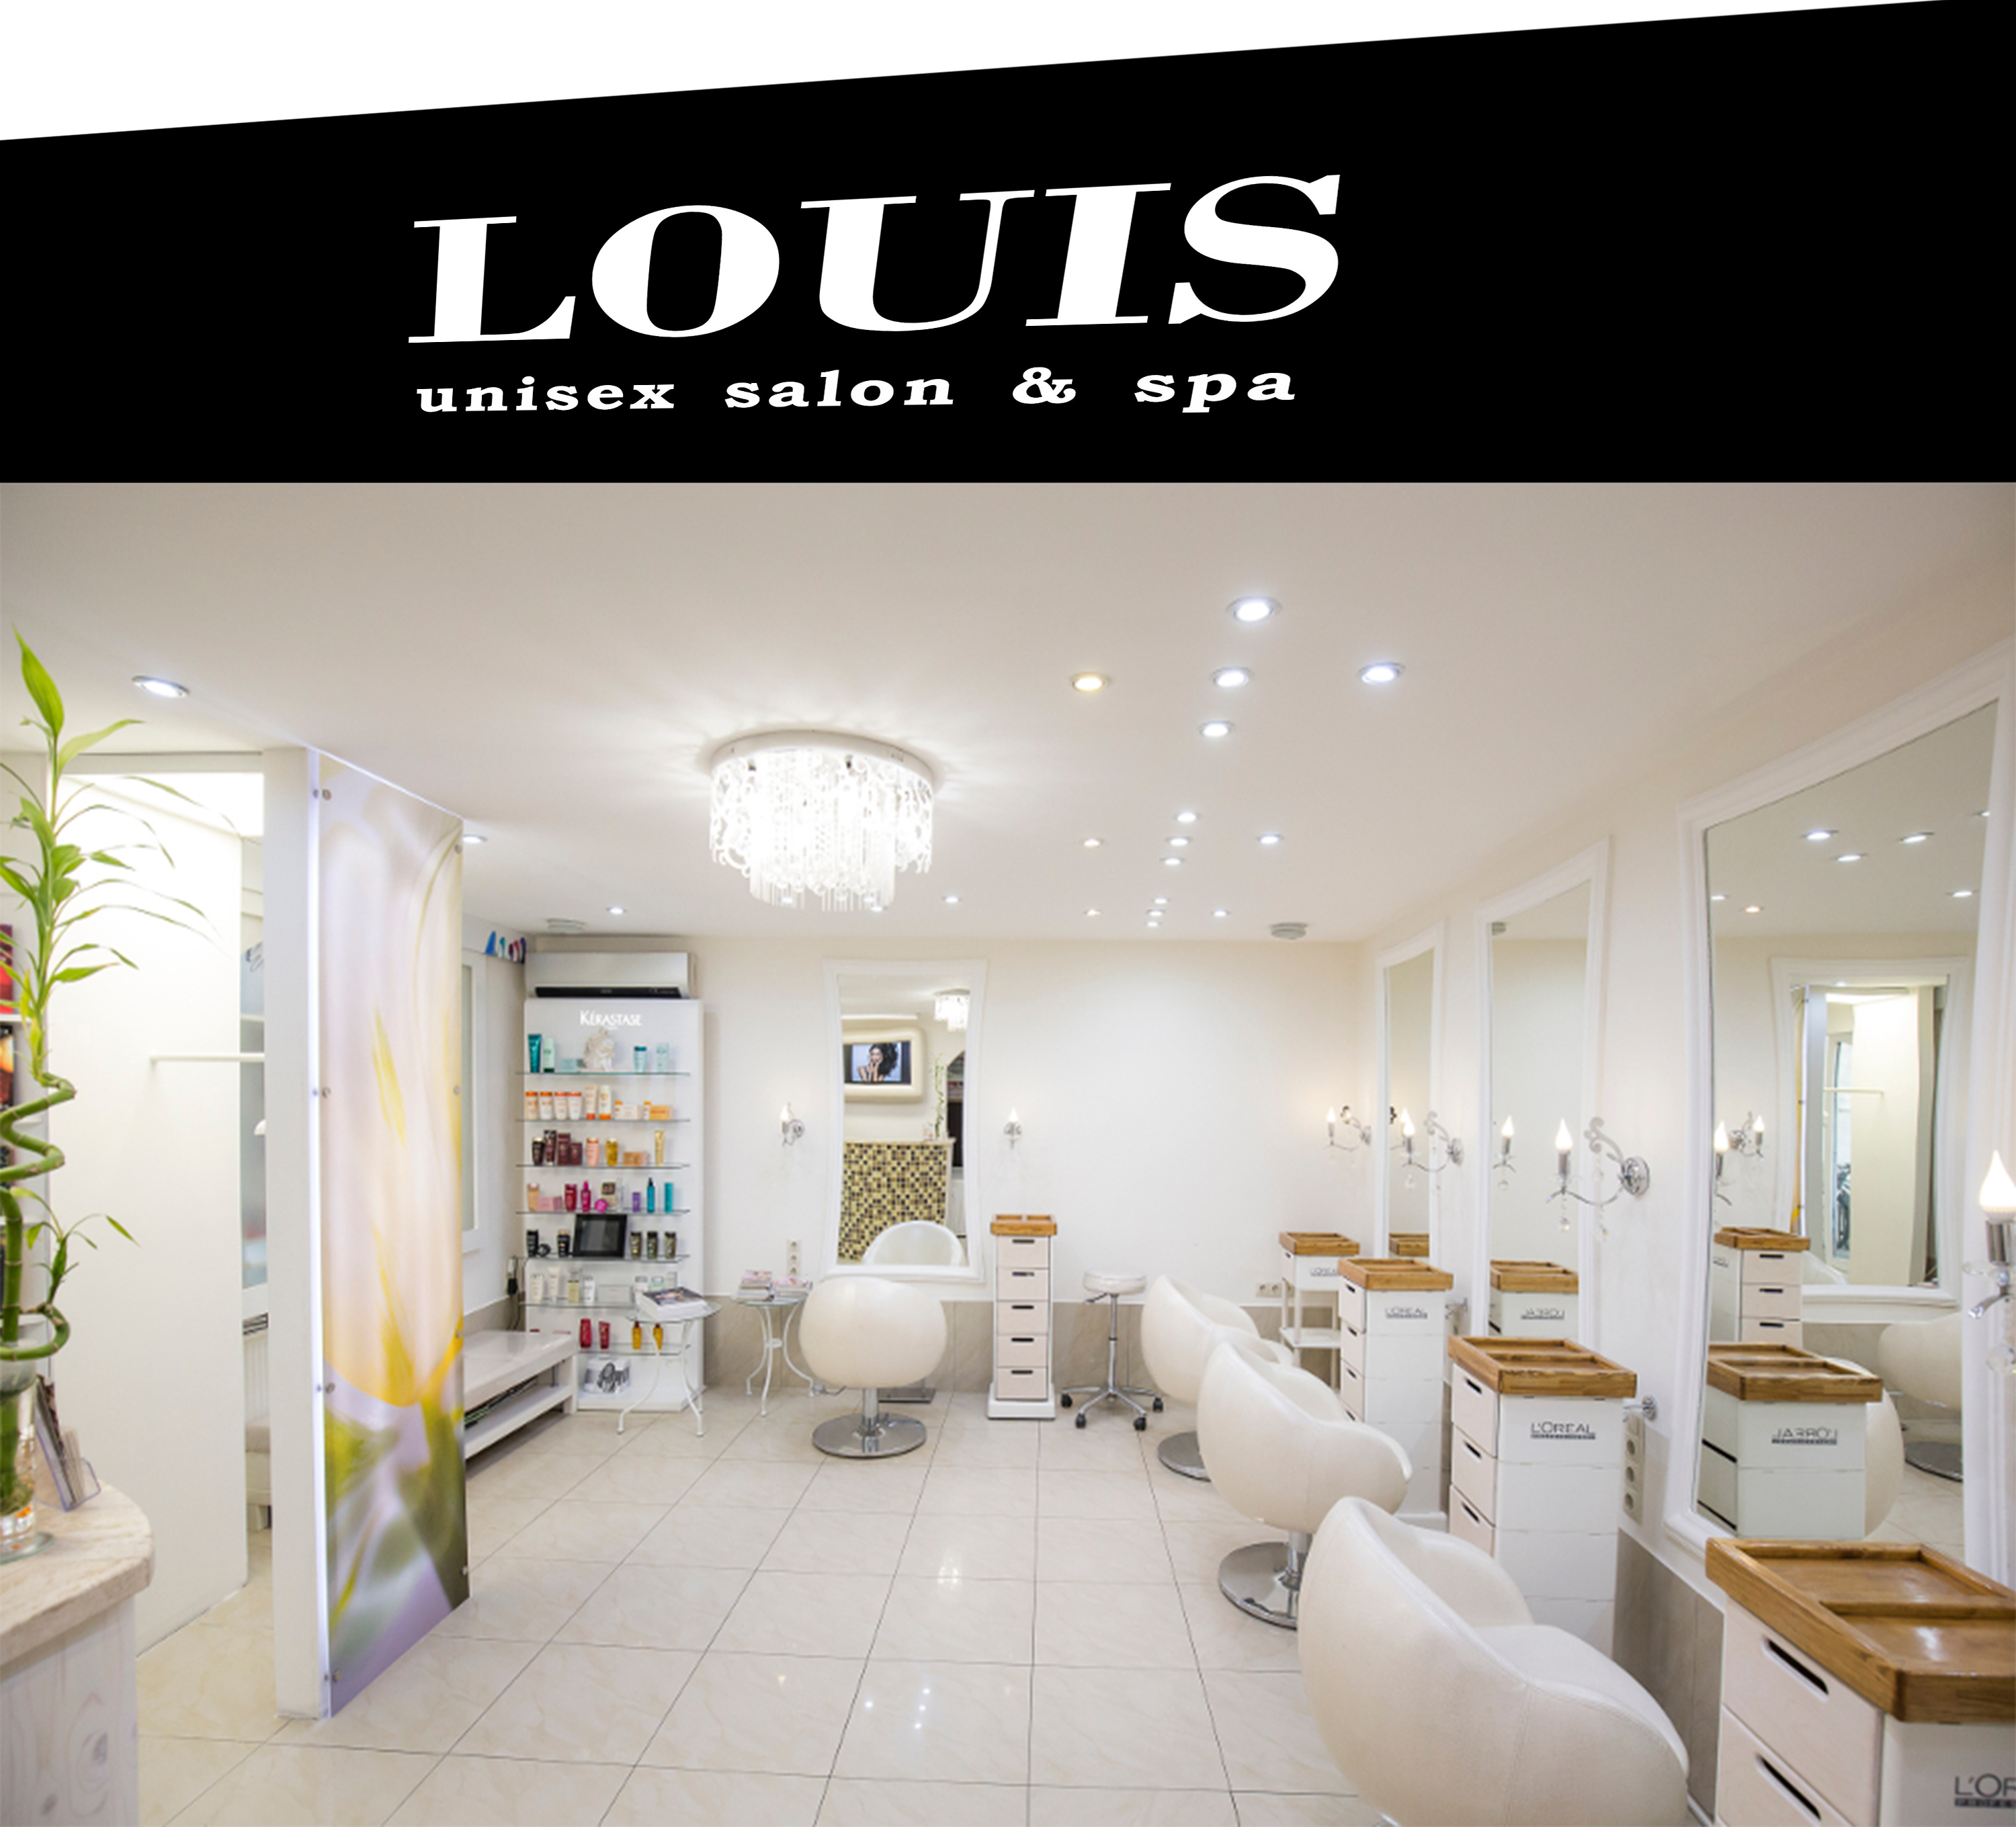 louis+unisex+salon+dubai 9